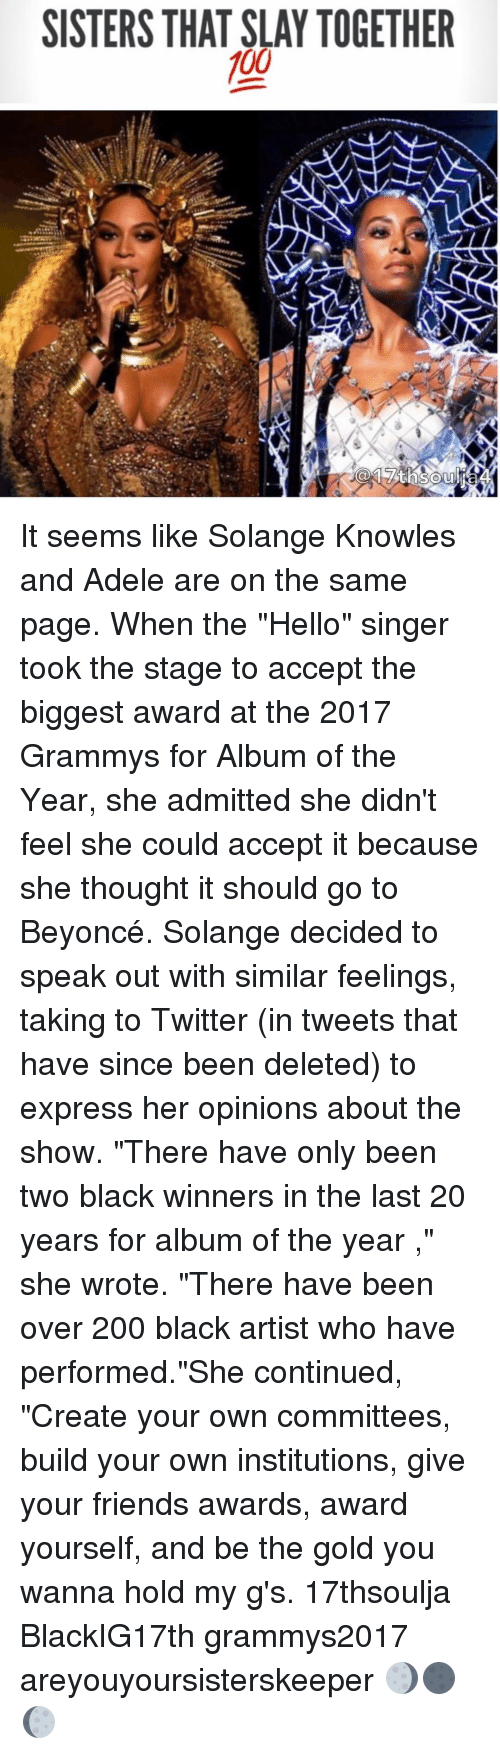 """Memes, Solange Knowles, and 🤖: SISTERS THAT SLAY TOGETHER  100 It seems like Solange Knowles and Adele are on the same page. When the """"Hello"""" singer took the stage to accept the biggest award at the 2017 Grammys for Album of the Year, she admitted she didn't feel she could accept it because she thought it should go to Beyoncé. Solange decided to speak out with similar feelings, taking to Twitter (in tweets that have since been deleted) to express her opinions about the show. """"There have only been two black winners in the last 20 years for album of the year ,"""" she wrote. """"There have been over 200 black artist who have performed.""""She continued, """"Create your own committees, build your own institutions, give your friends awards, award yourself, and be the gold you wanna hold my g's. 17thsoulja BlackIG17th grammys2017 areyouyoursisterskeeper 🌖🌑🌔"""